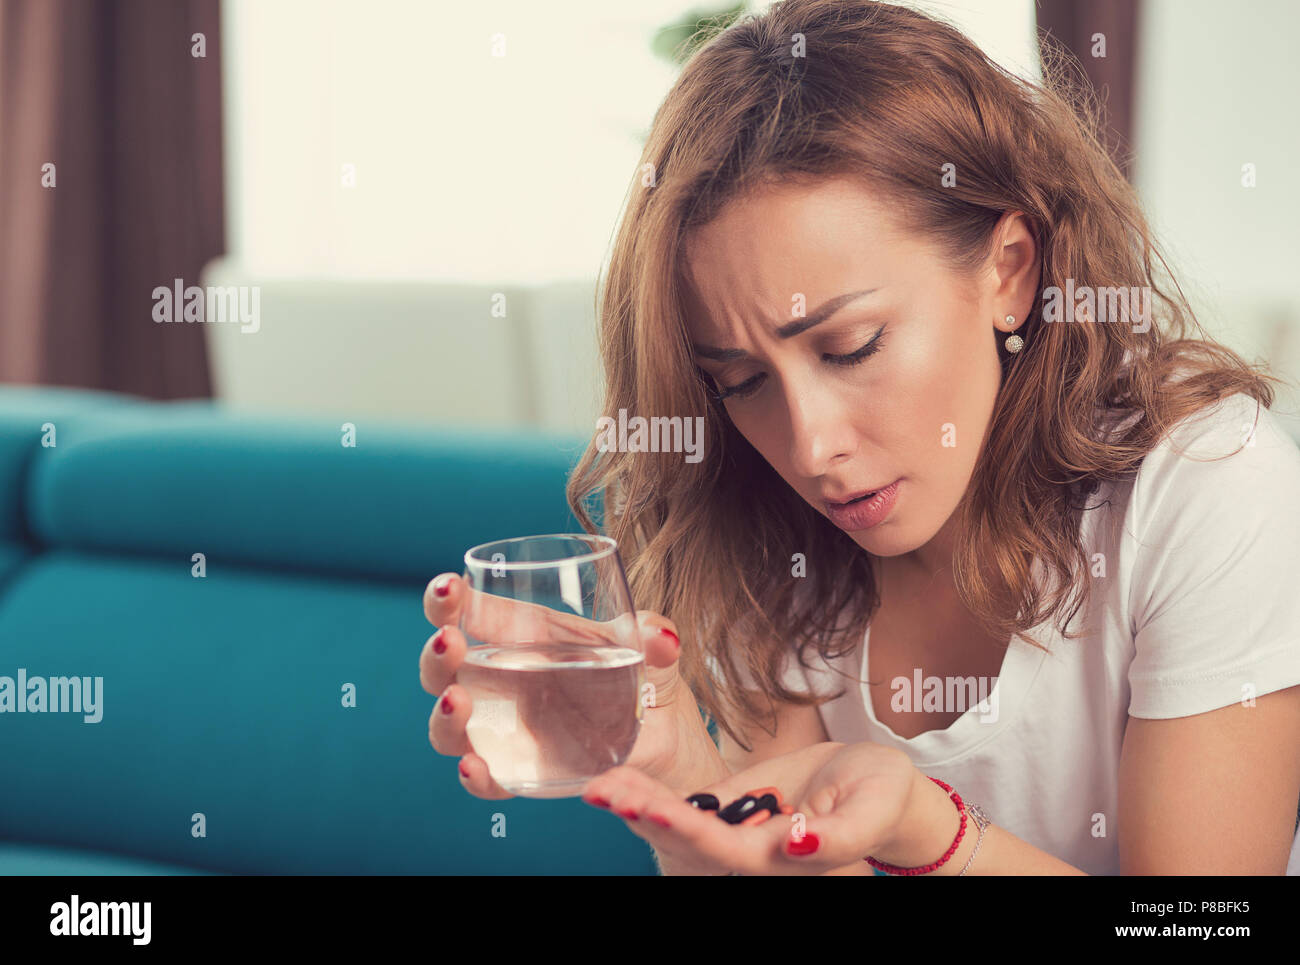 stressed depressed attractive young woman with painkiller pills and glass of water sitting on a sofa in her apartment - Stock Image